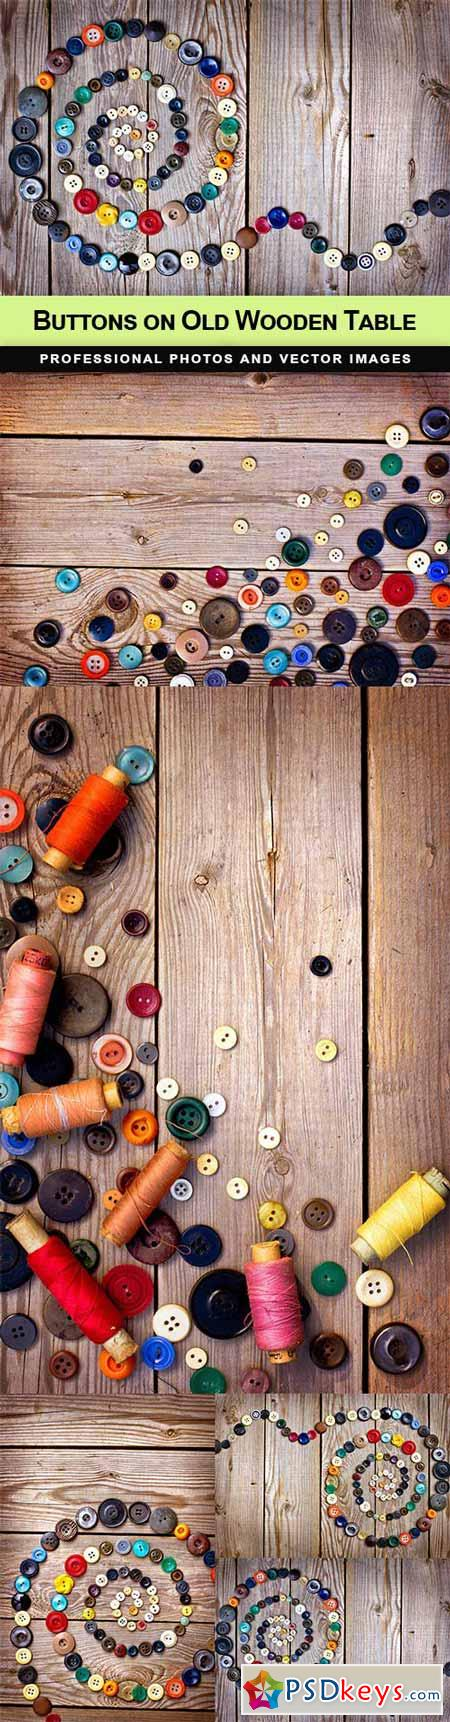 Buttons on Old Wooden Table - 5 UHQ JPEG